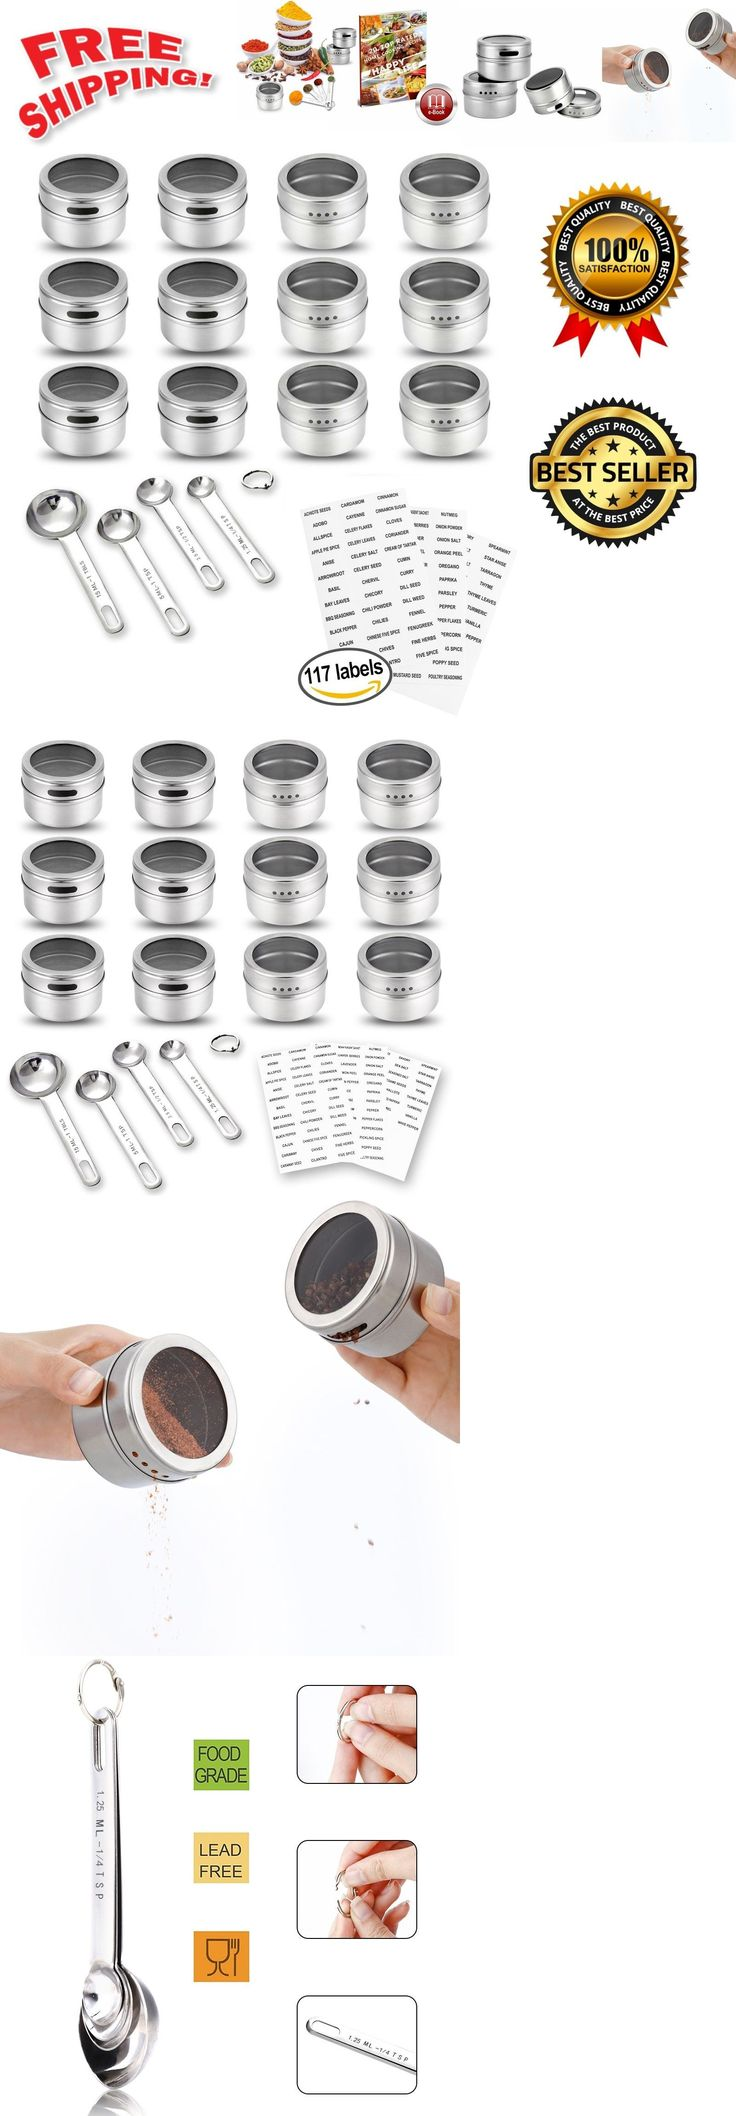 Spice Jars and Racks 20646: Magnetic Spice Tin Set Stainless Steel Jars Clear Lids Containers Labels Spoons -> BUY IT NOW ONLY: $31.99 on eBay!